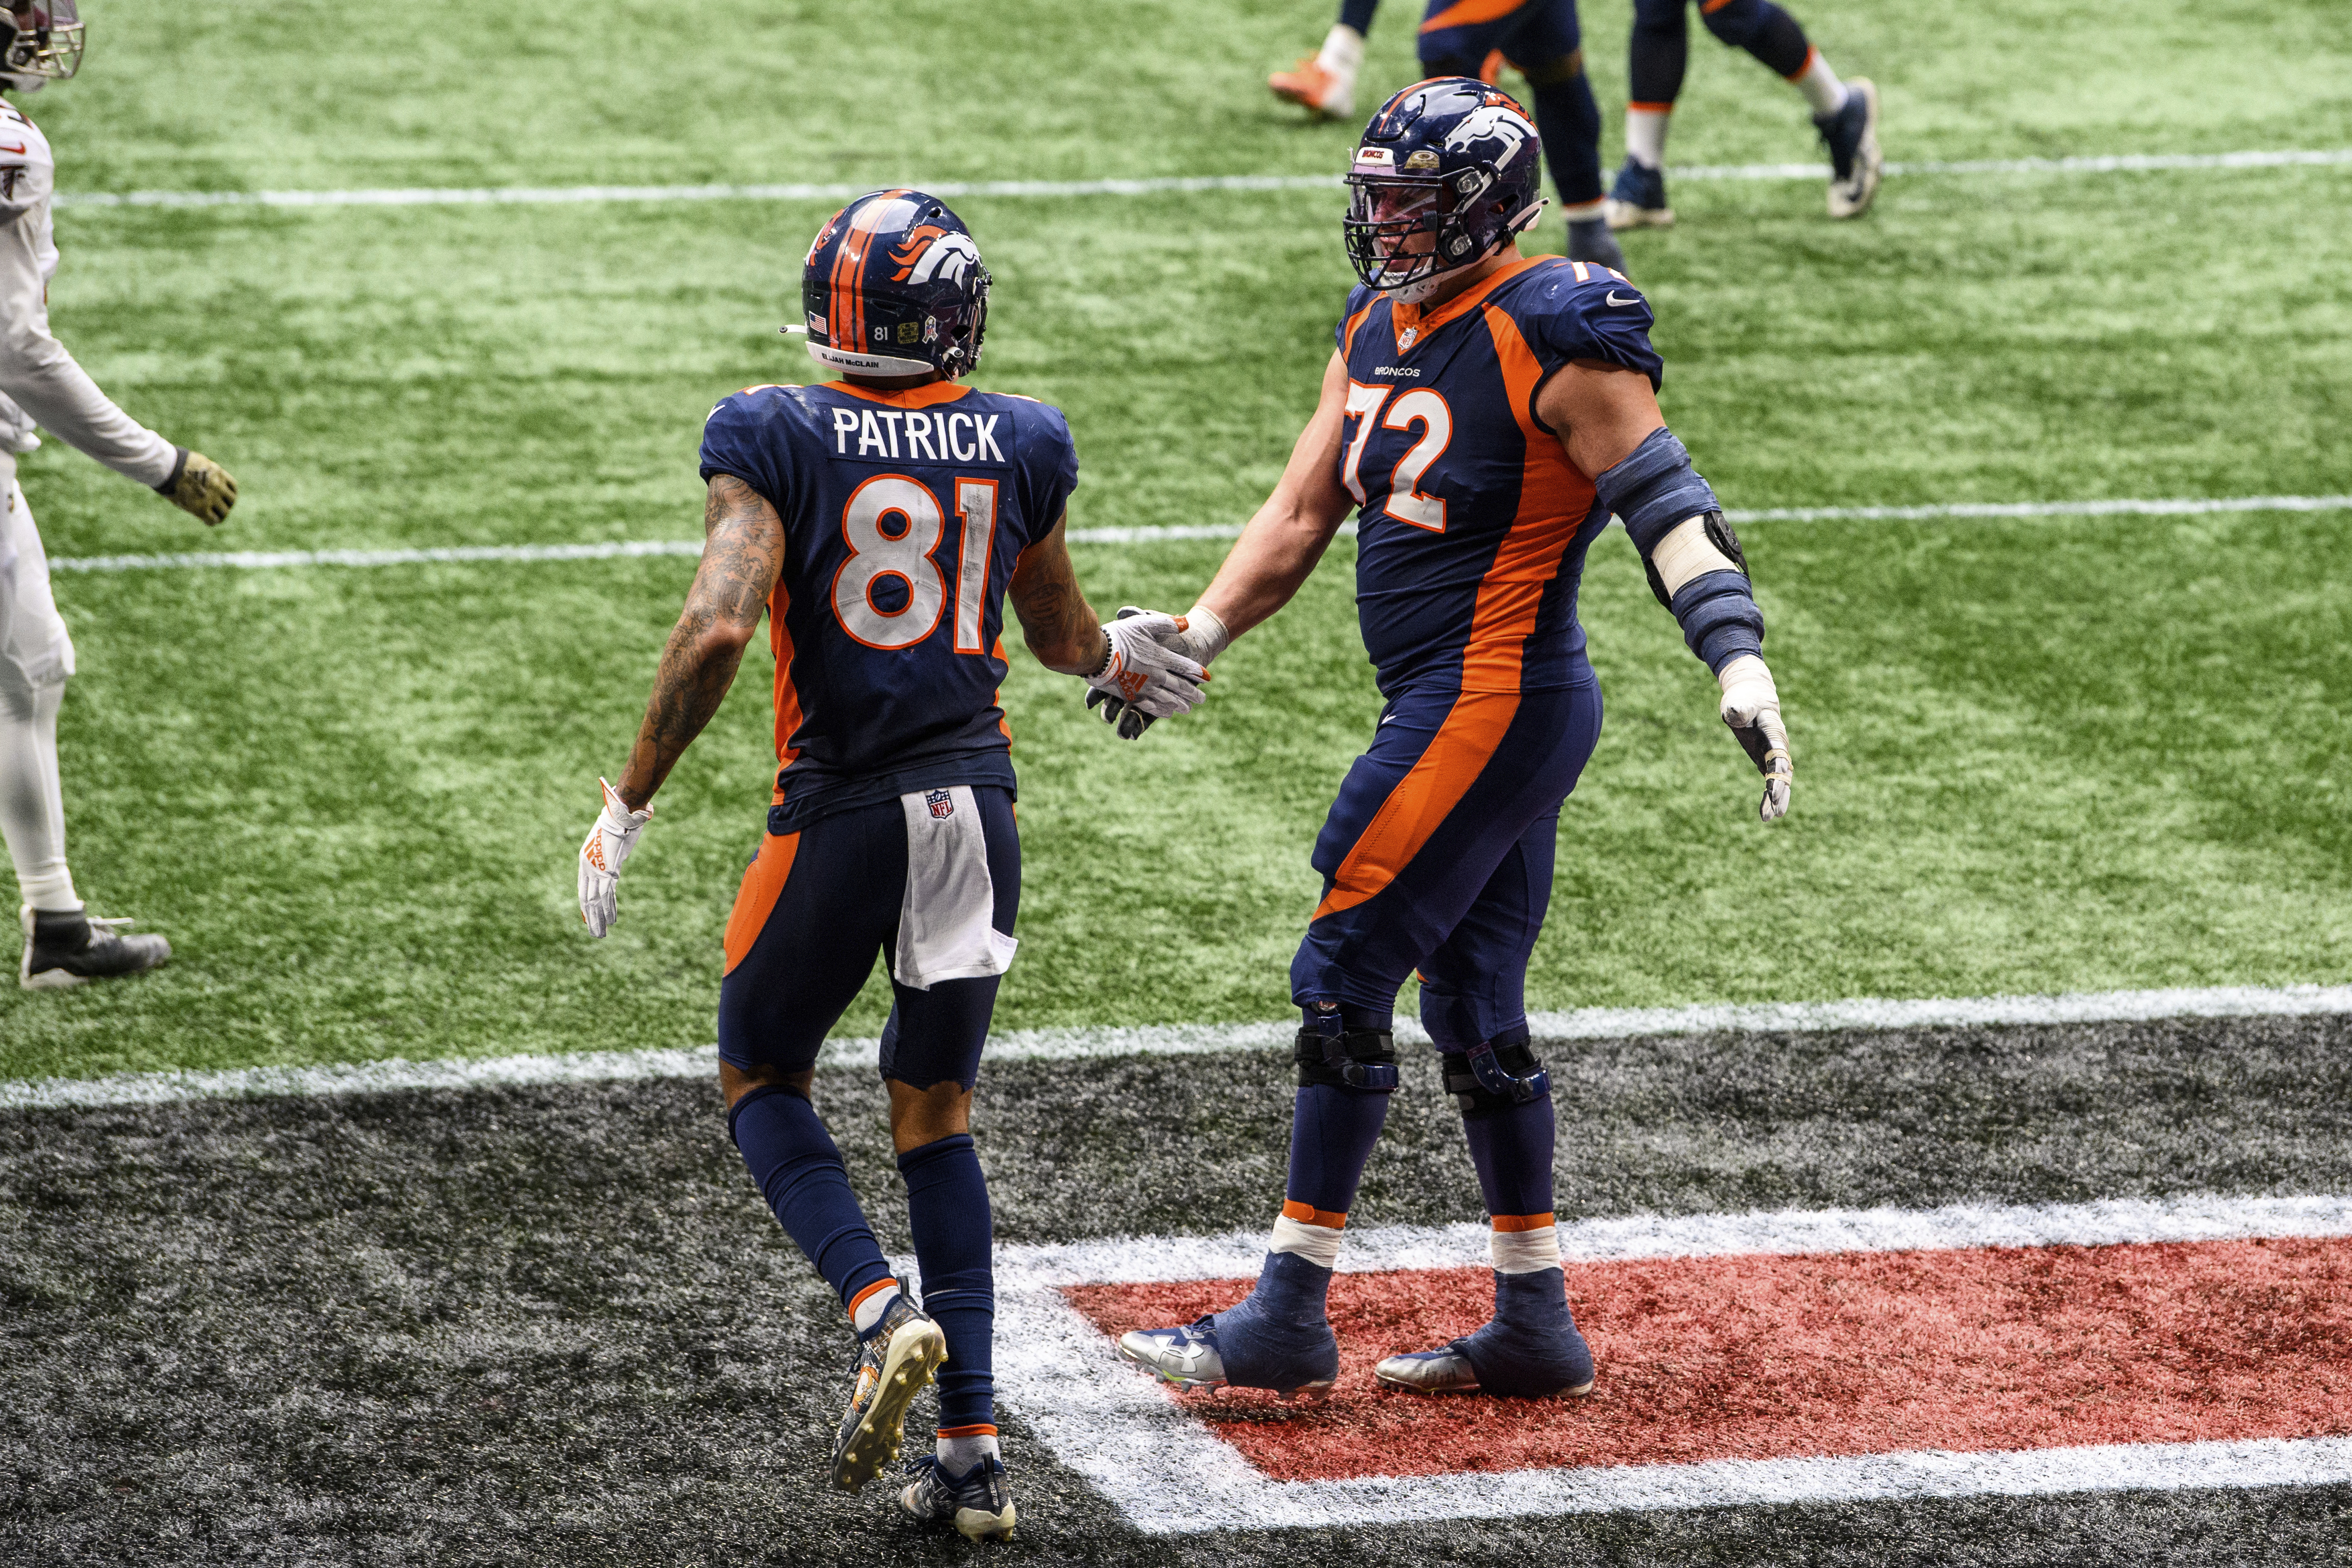 Denver Broncos offensive tackle Garett Bolles celebrates with wide receiver Tim Patrick after a touchdown.